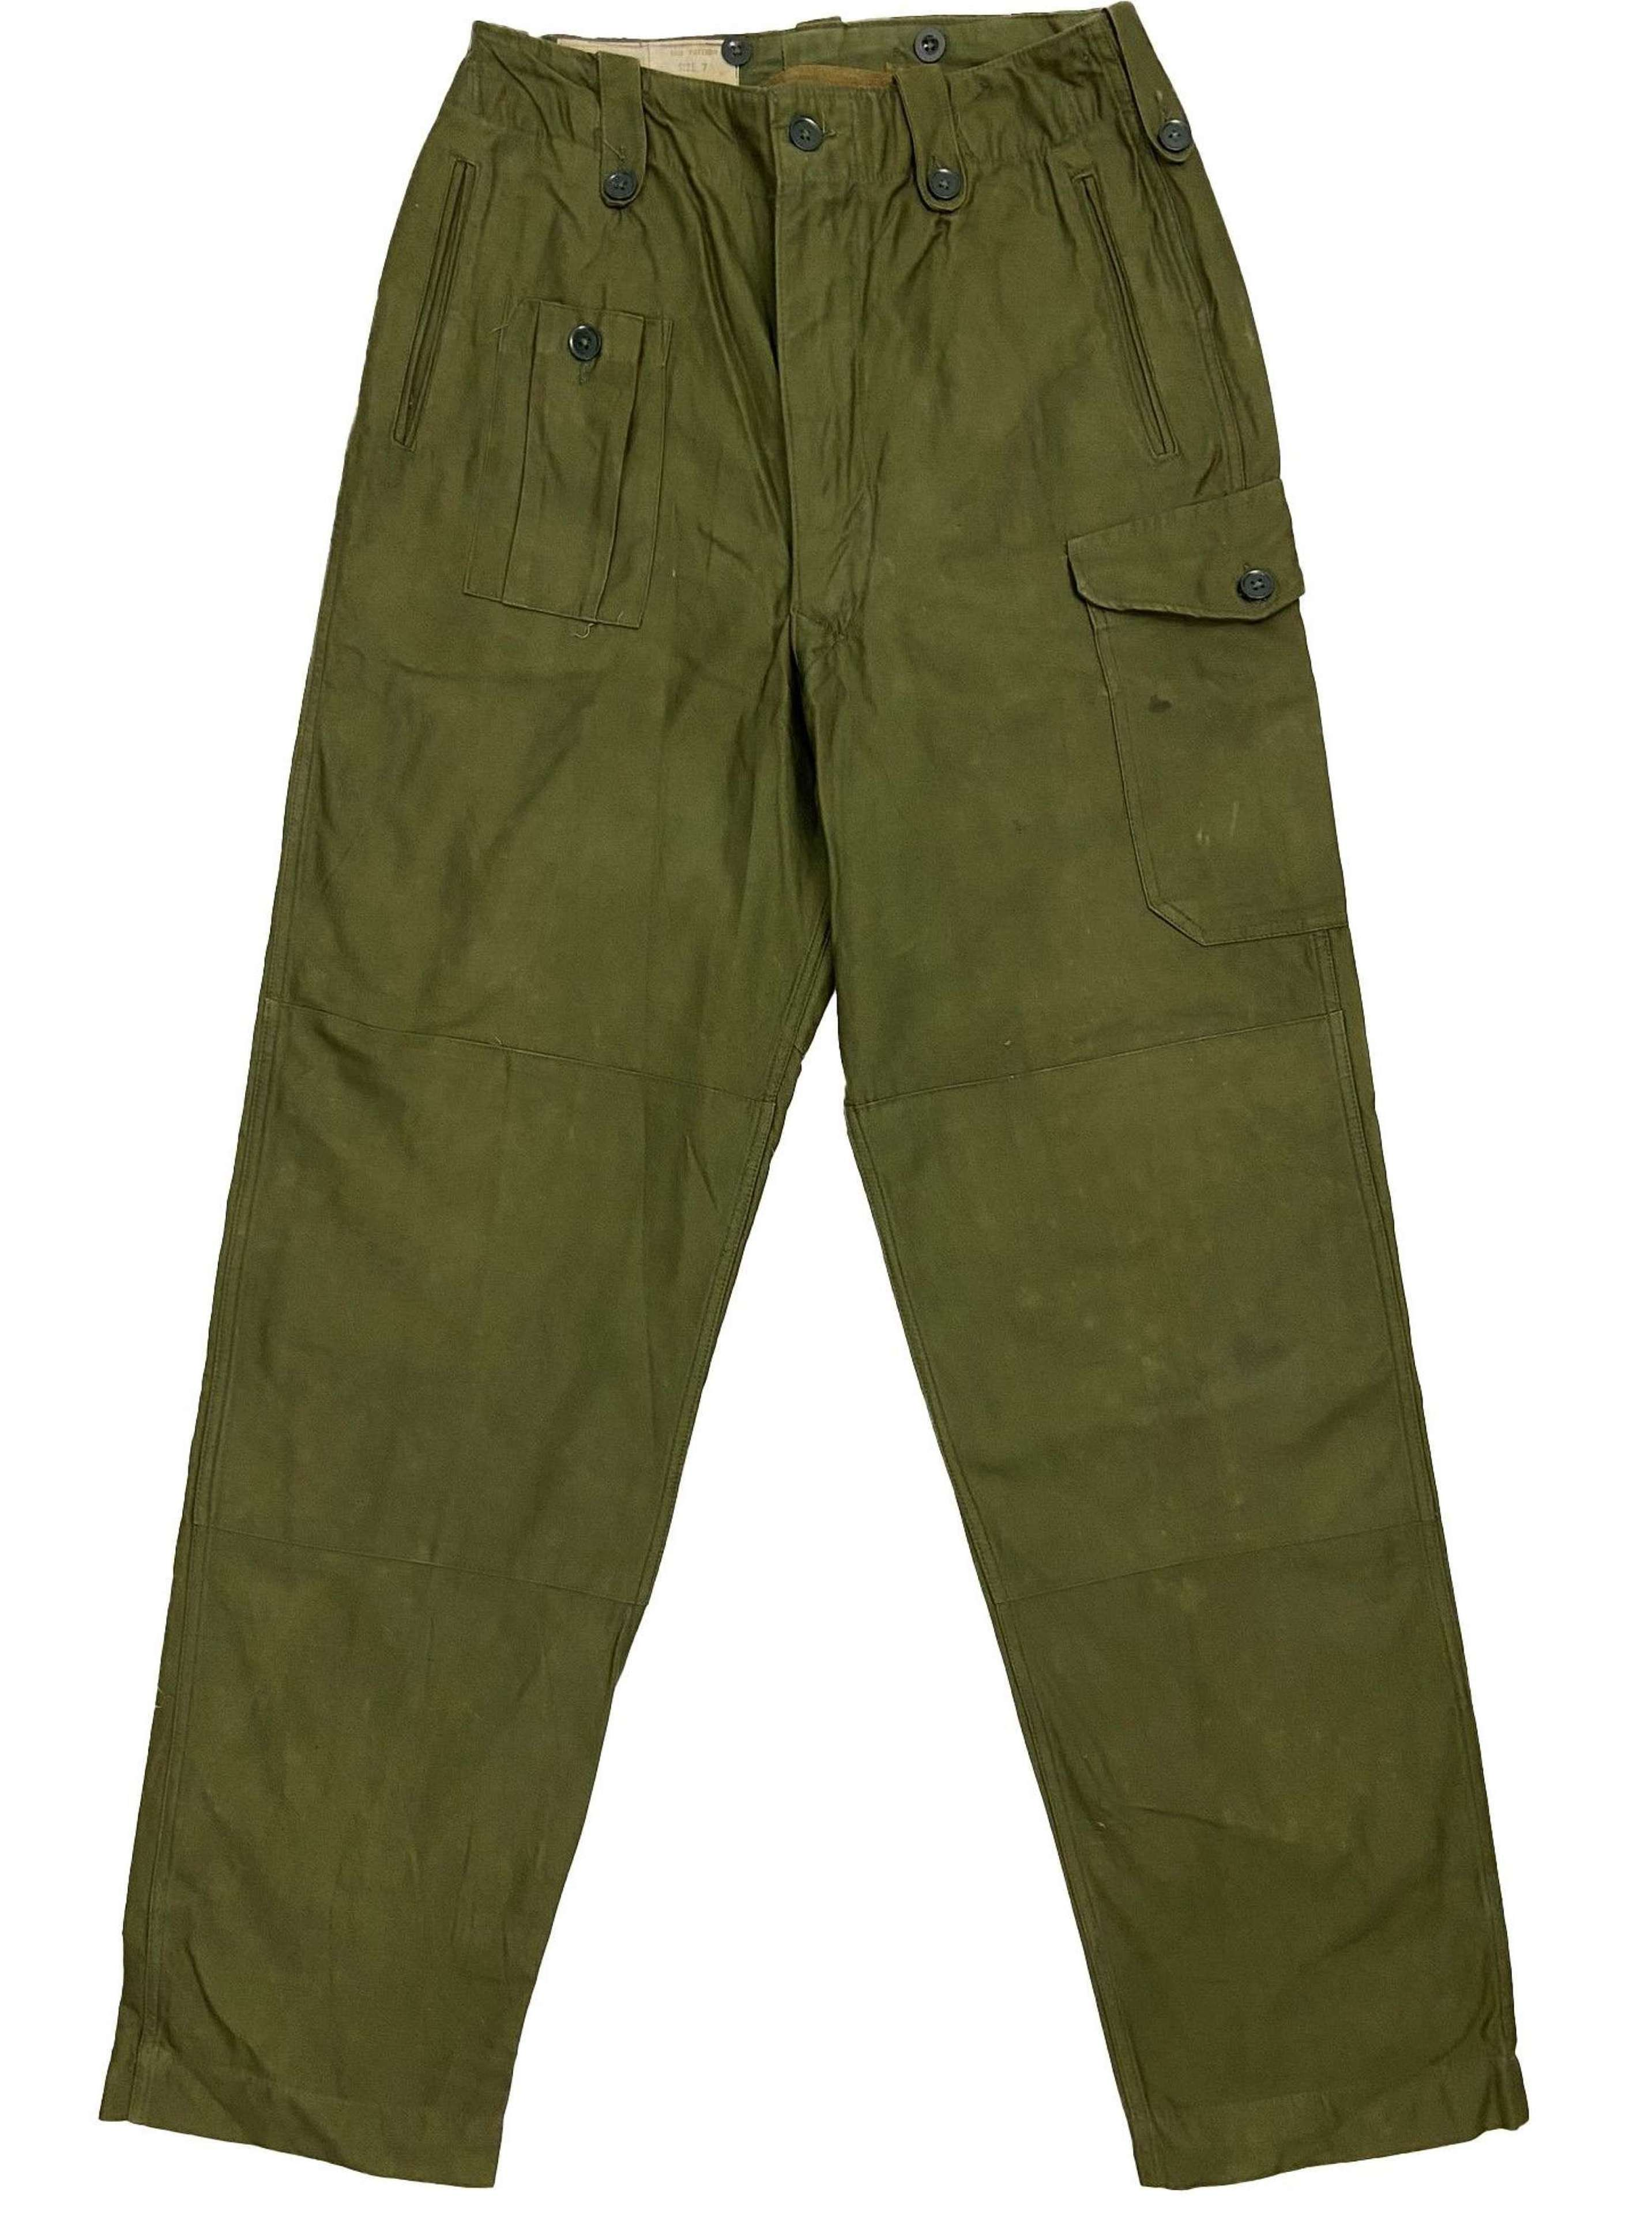 Original 1964 Dated 1960 Pattern Combat Trousers - Size 7